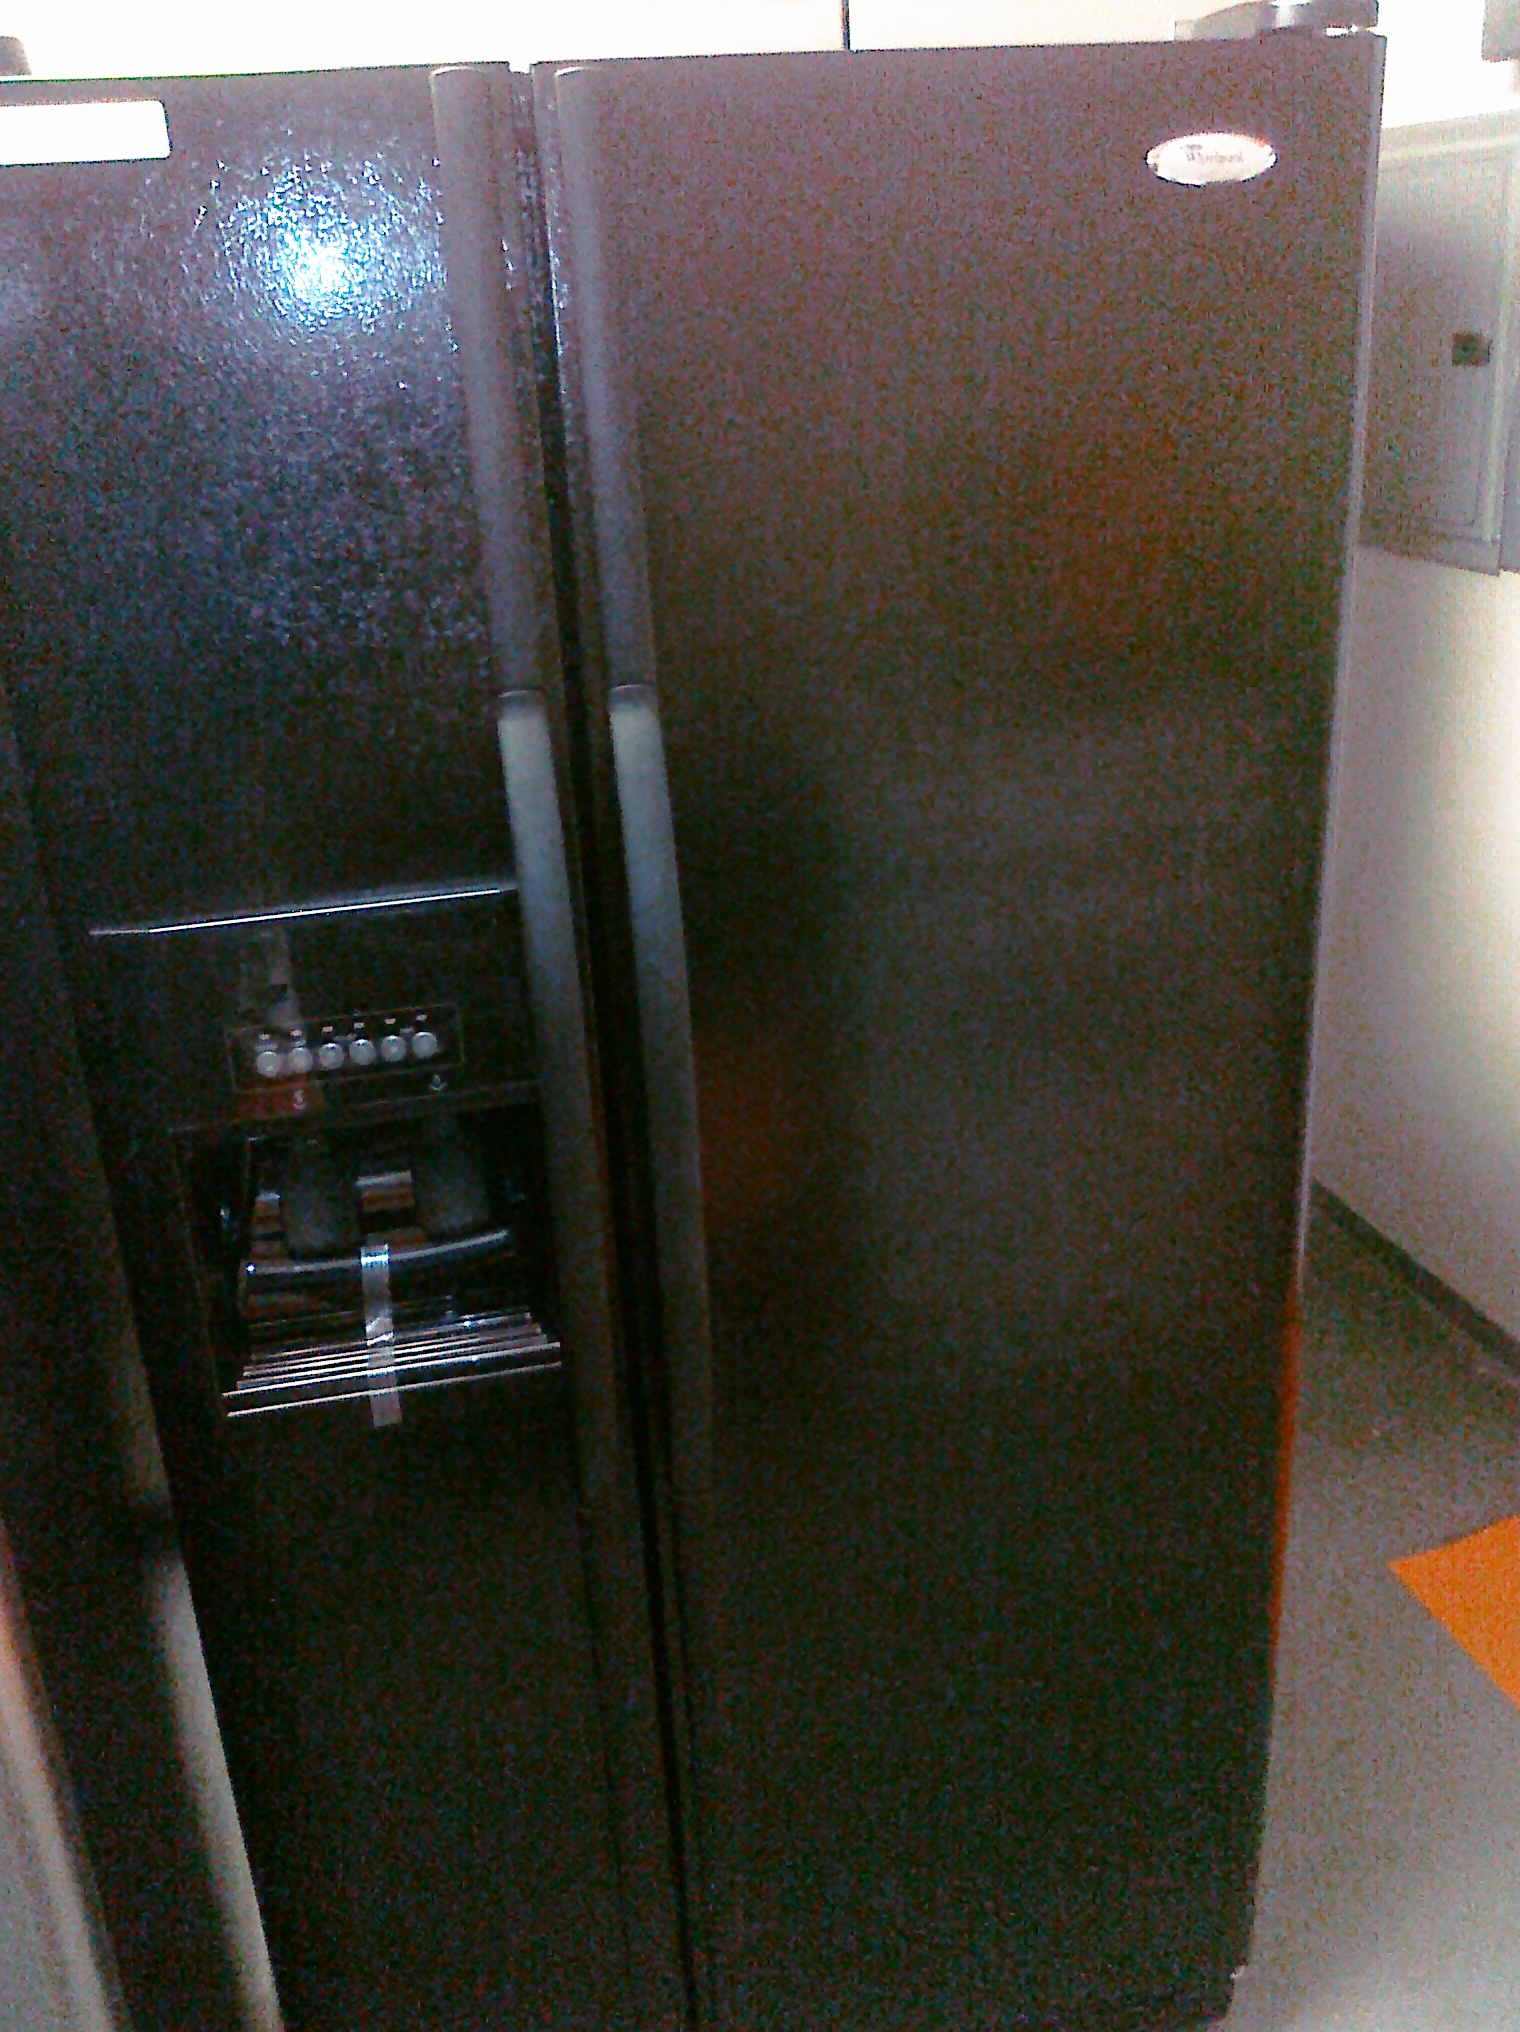 9) Whirlpool ED2VHEXVB 21 7 Cubic Foot Side-By-Side Refrigerator